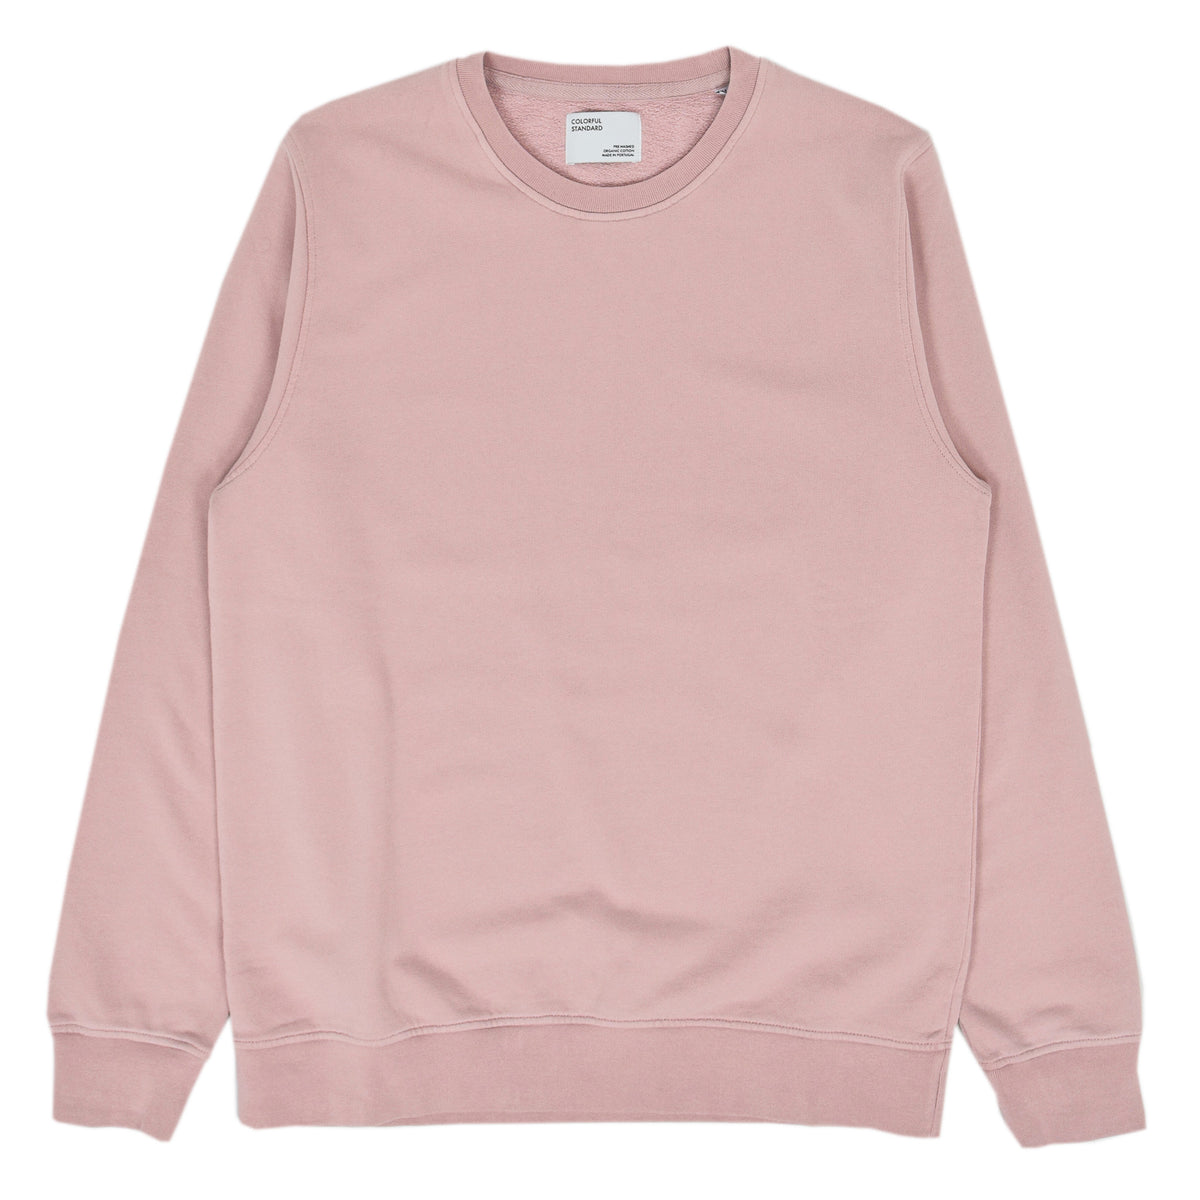 Colorful Standard Classic Organic Cotton Crew Sweat Faded Pink front